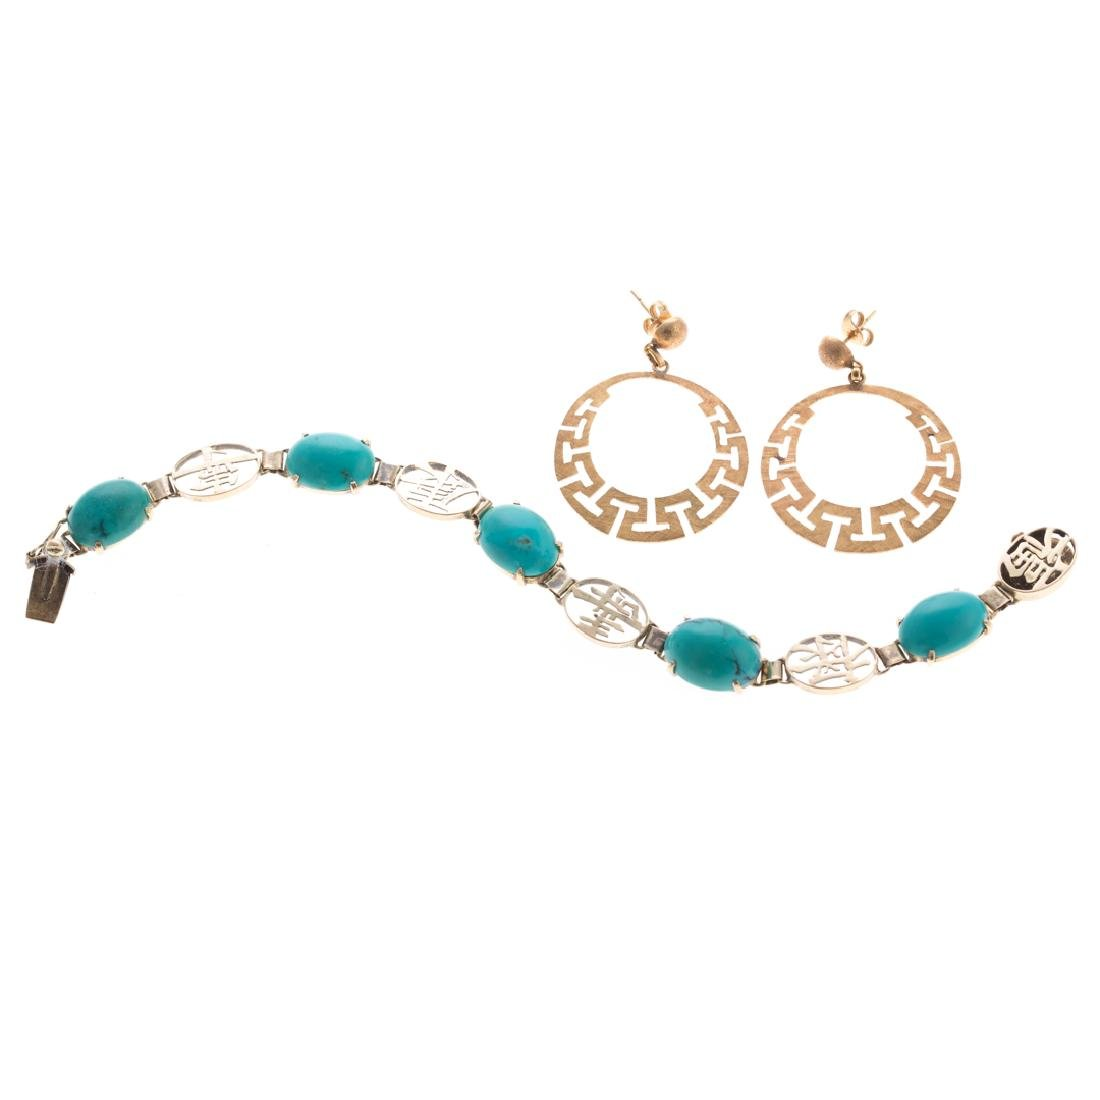 A Pair of Earrings with Turquoise Bracelet in Gold